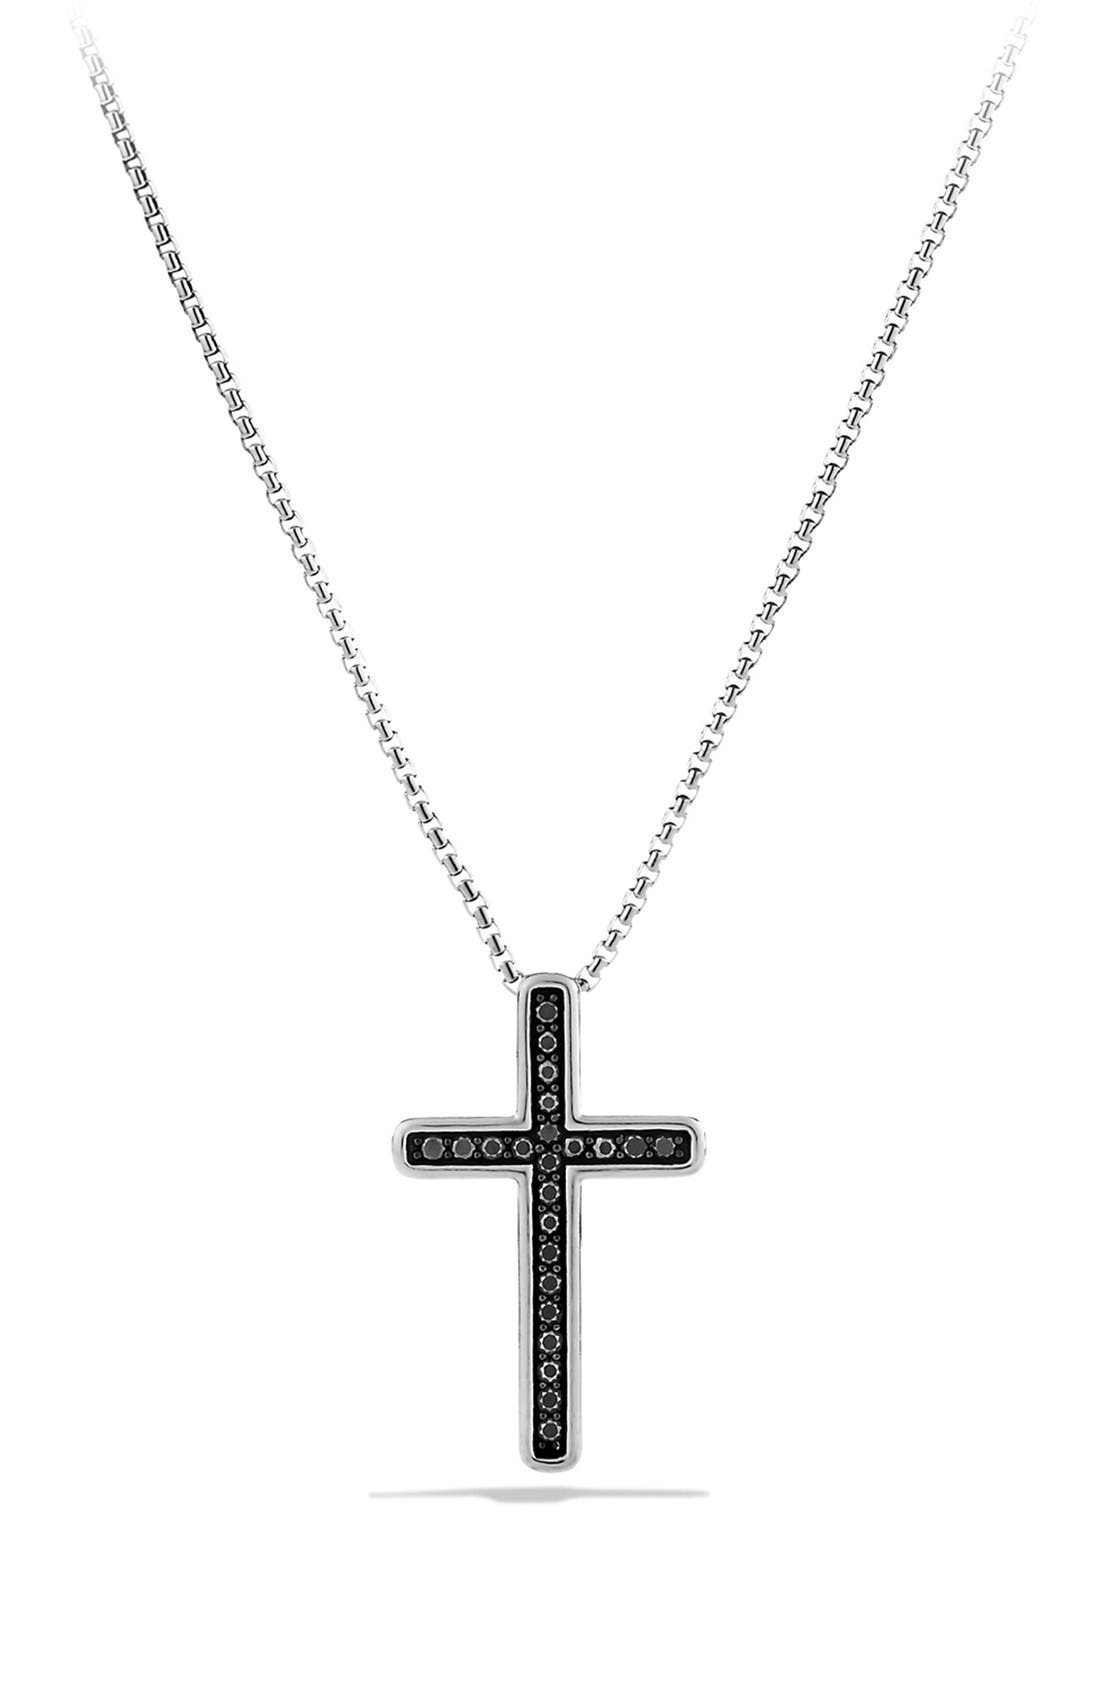 Alternate Image 1 Selected - David Yurman 'Petite Pavé' Cross Necklace with Black Diamonds